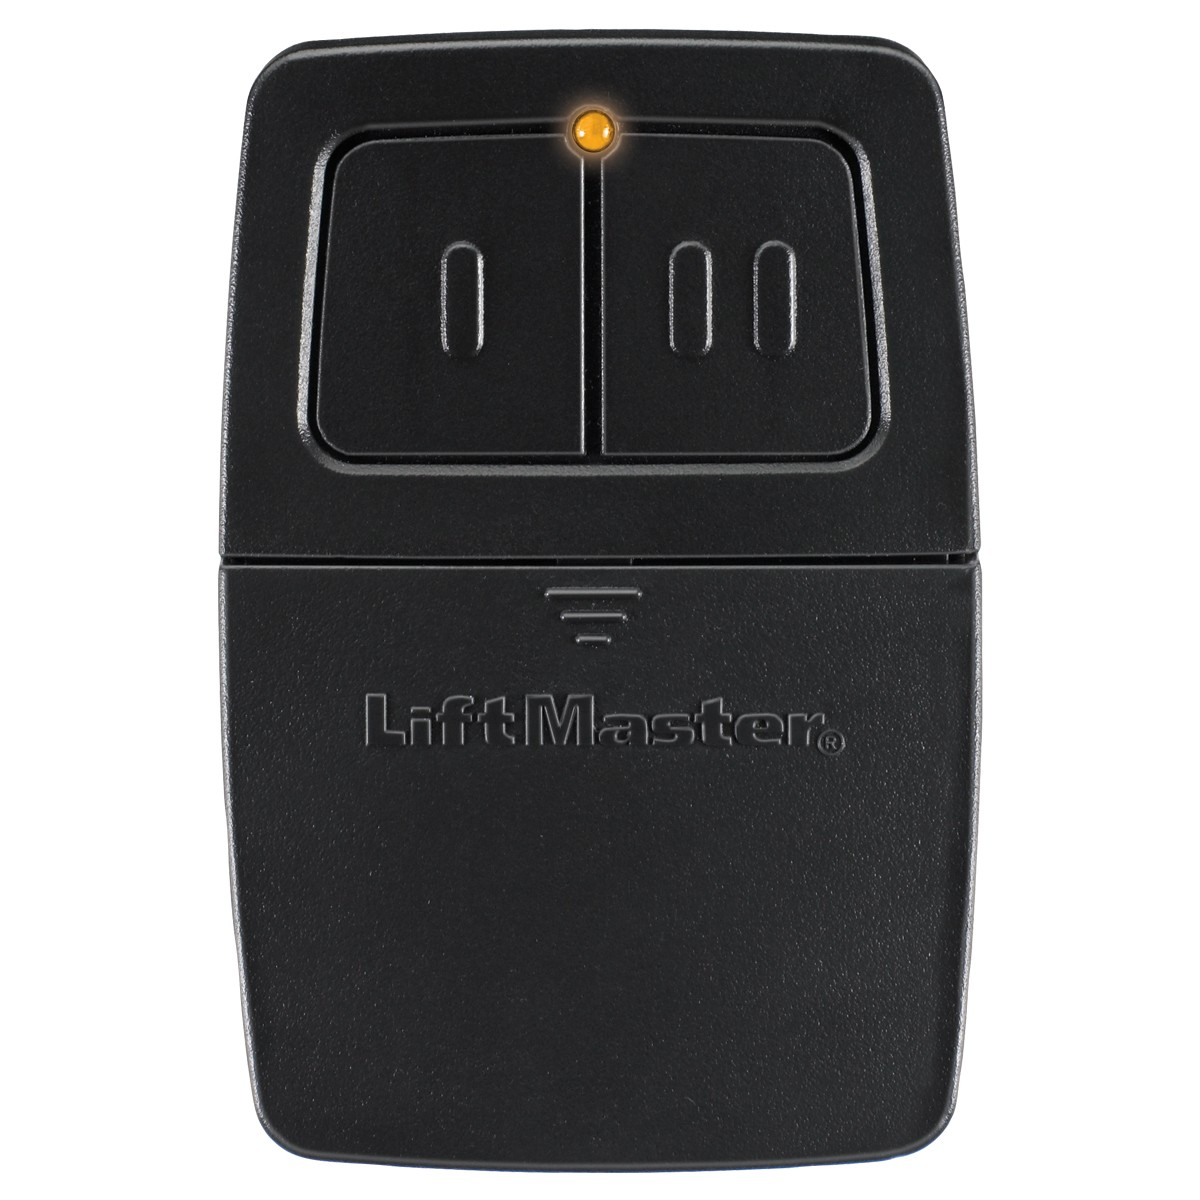 Controlled access eagle patriot allomatic apollo gates for 12 volt battery for garage door keypad